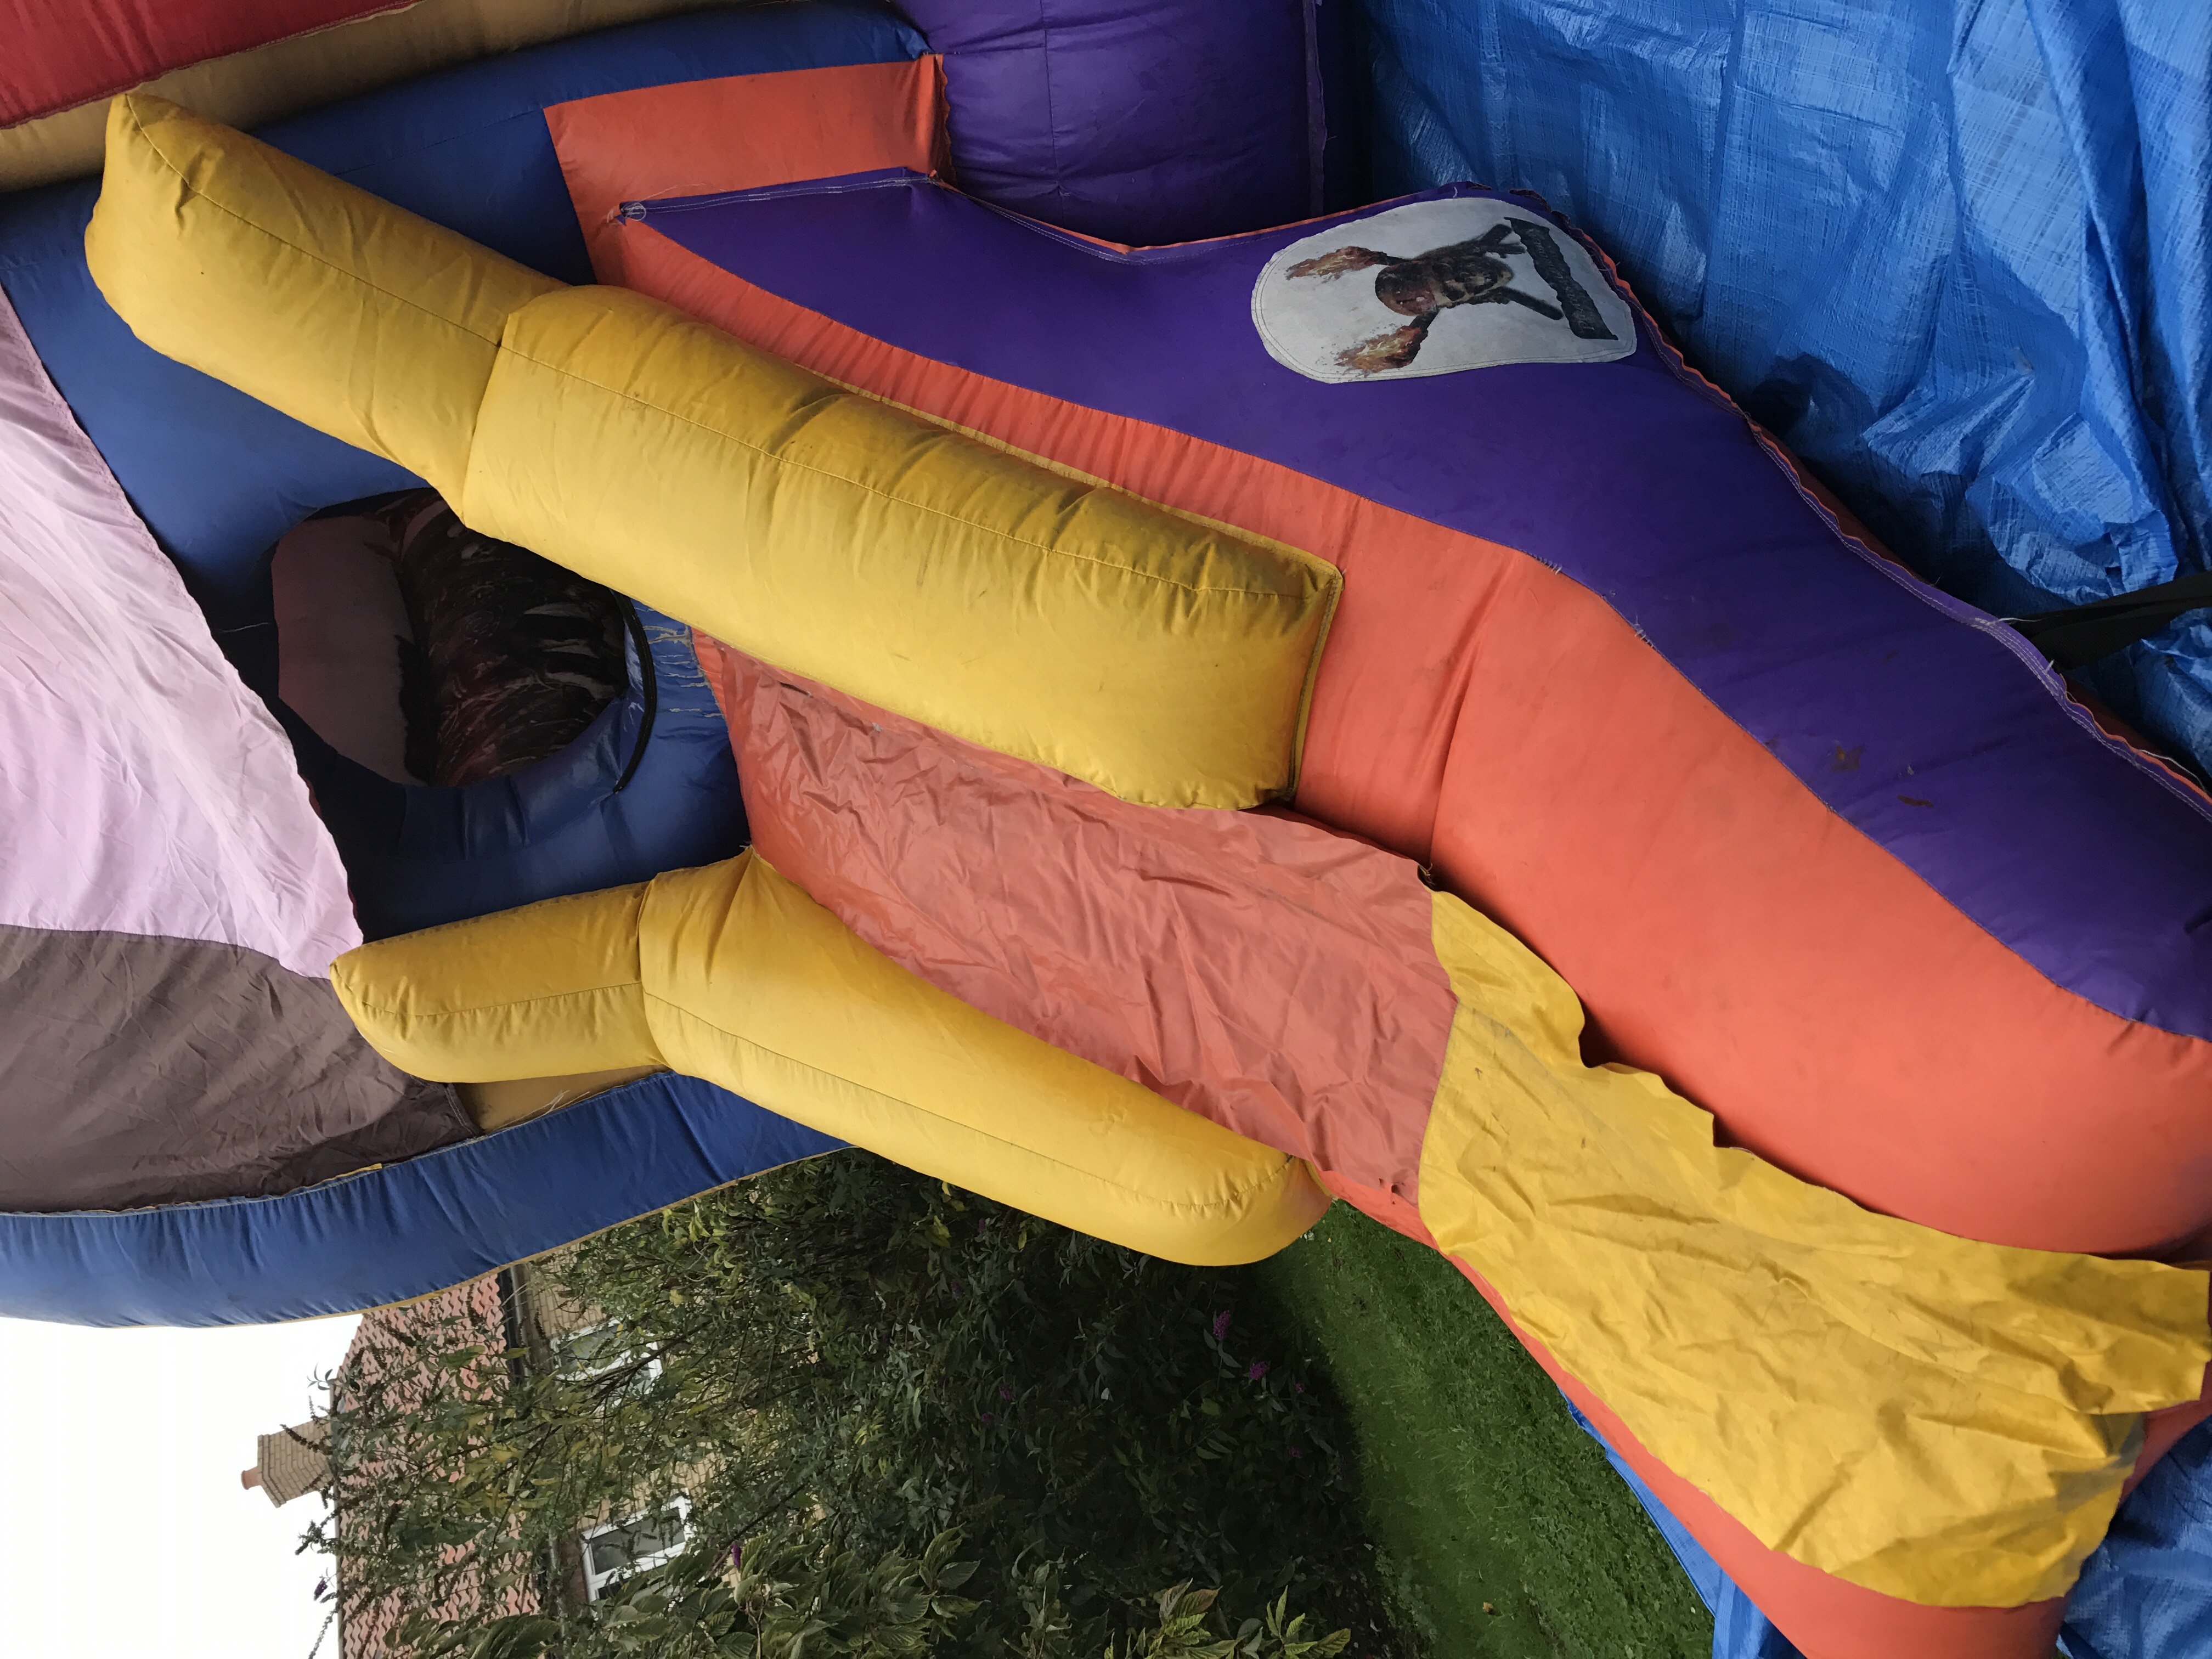 15 x 21 Foot Pirates Of The Caribbean Bouncy Castle Slide - Bouncy Castle Hire - www.bigbouncybriers